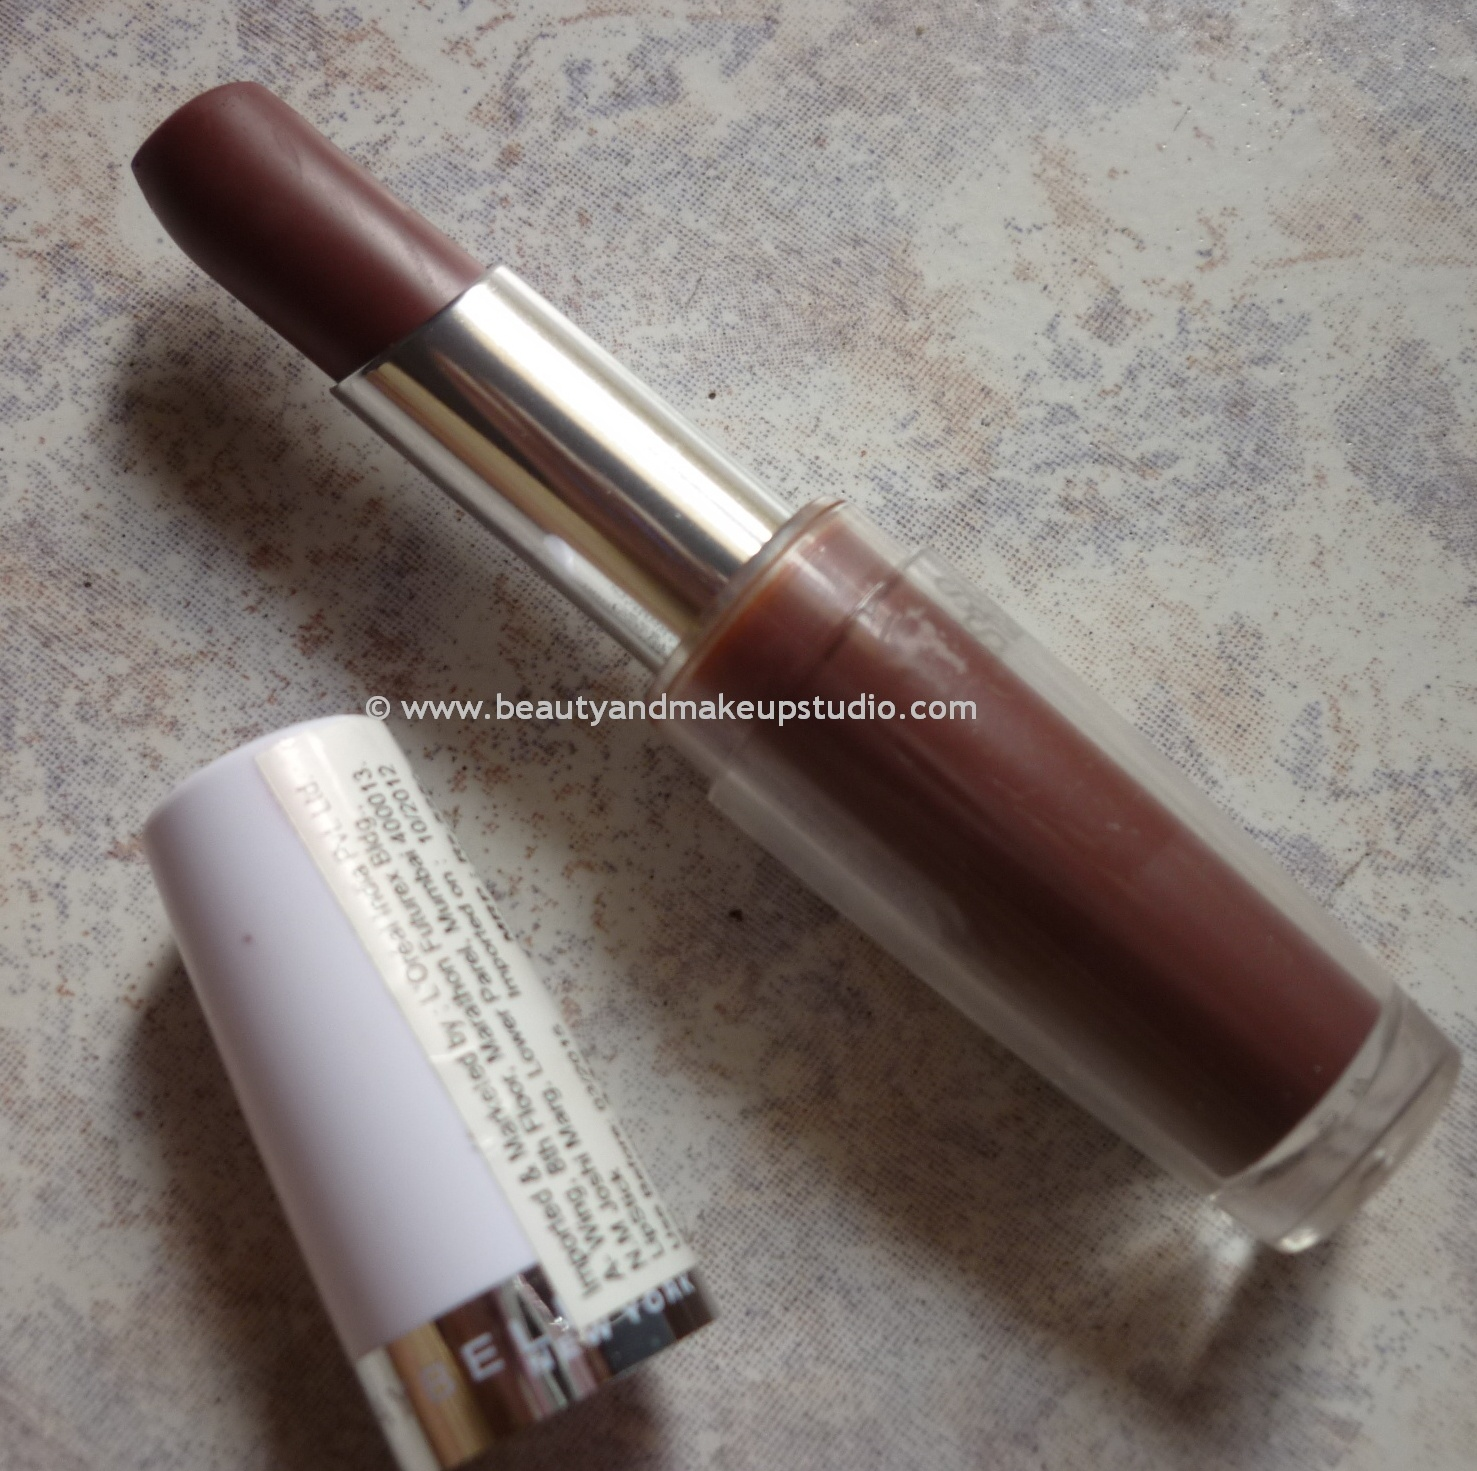 Maybelline 14 Hour Lipstick Price 14 Hour Long Lasting Lipstick